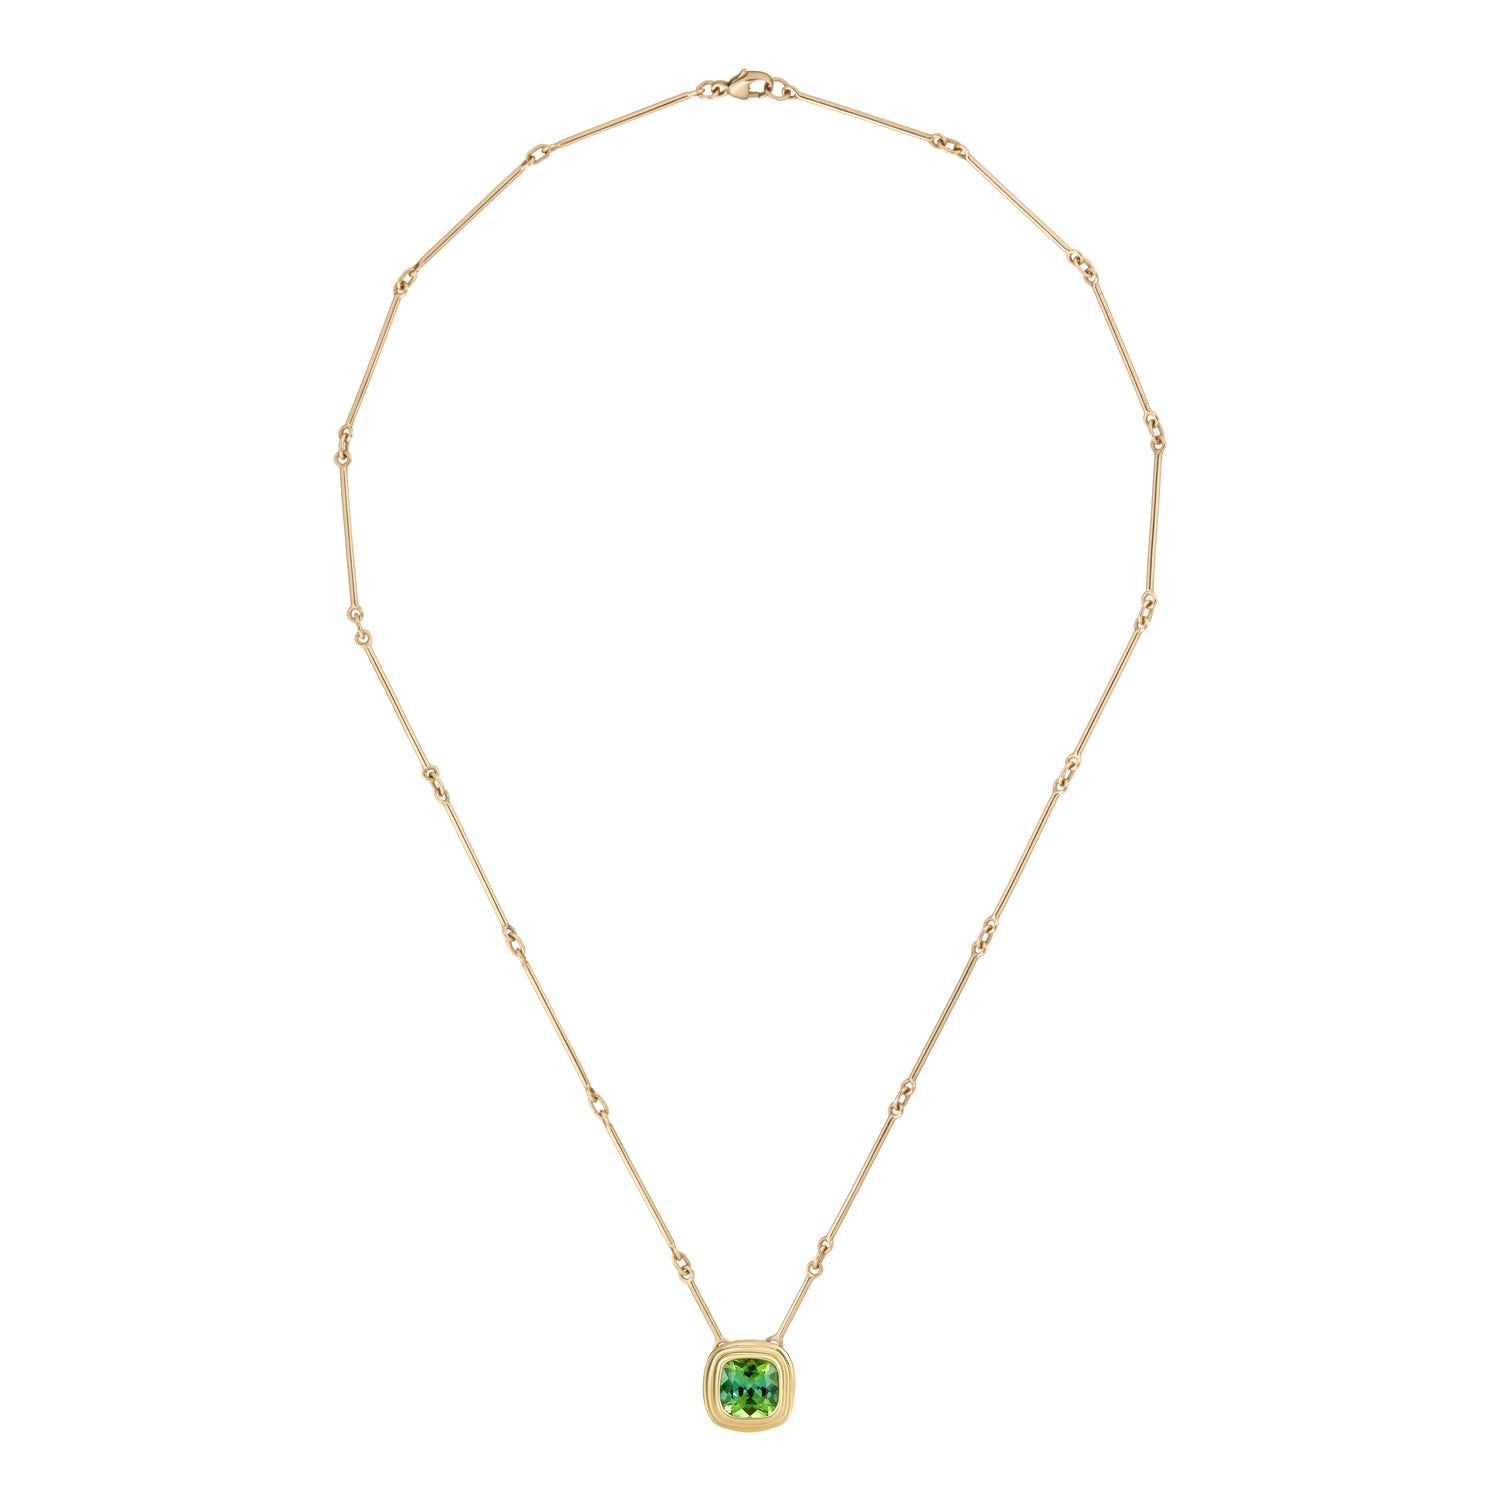 Athena: Vivid, Green Tourmaline Necklace